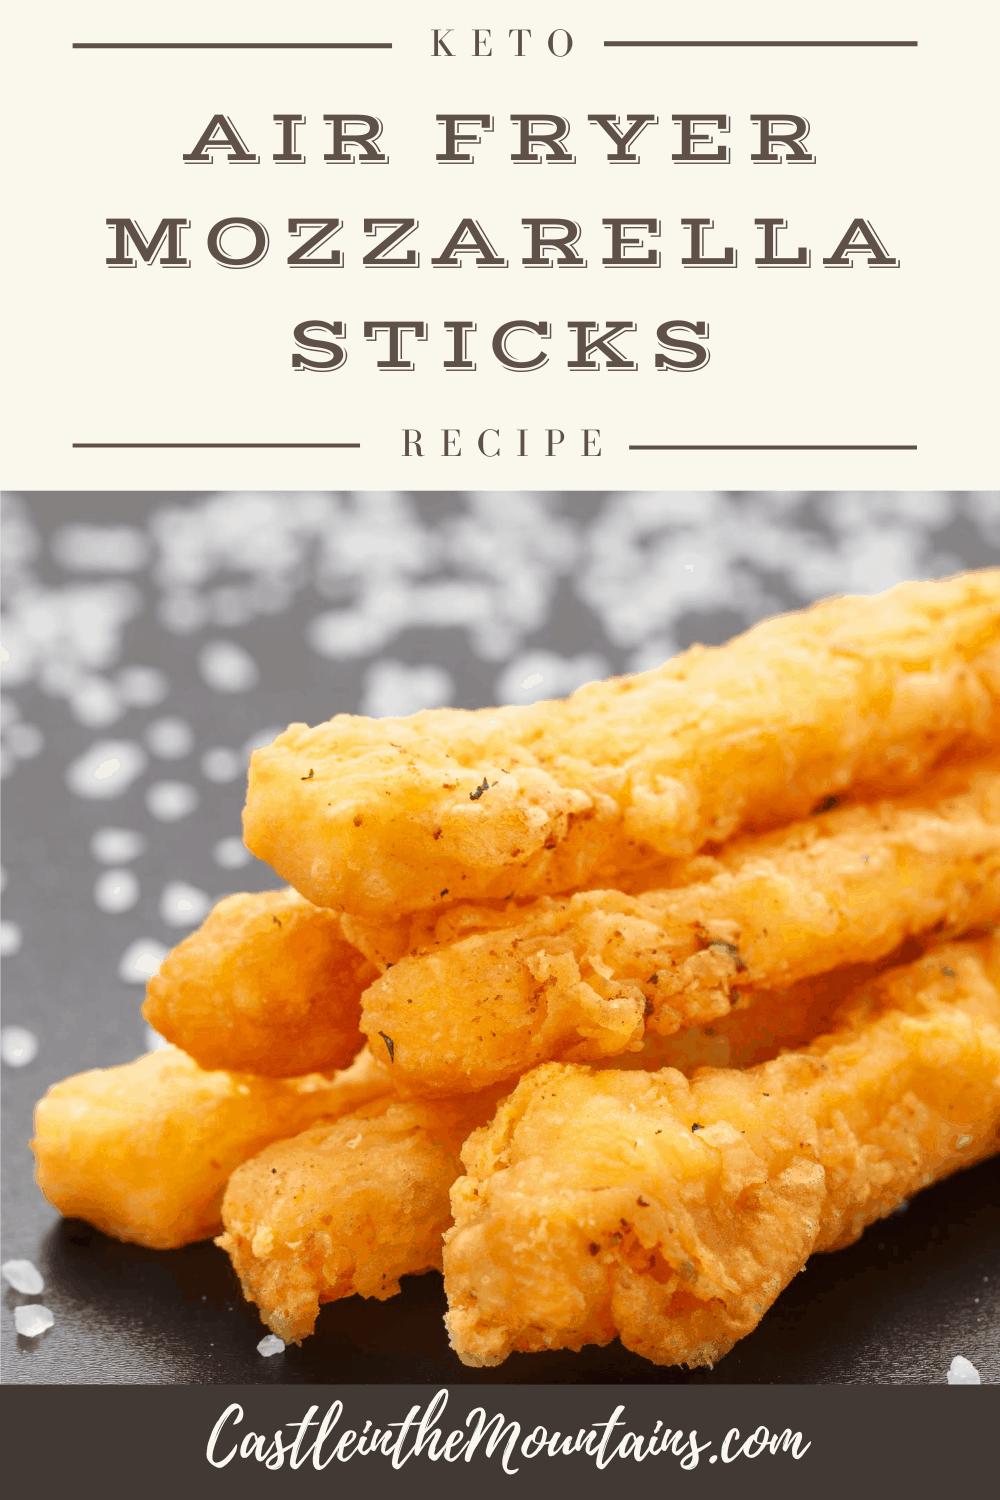 Keto Air Fryer Mozzarella Sticks